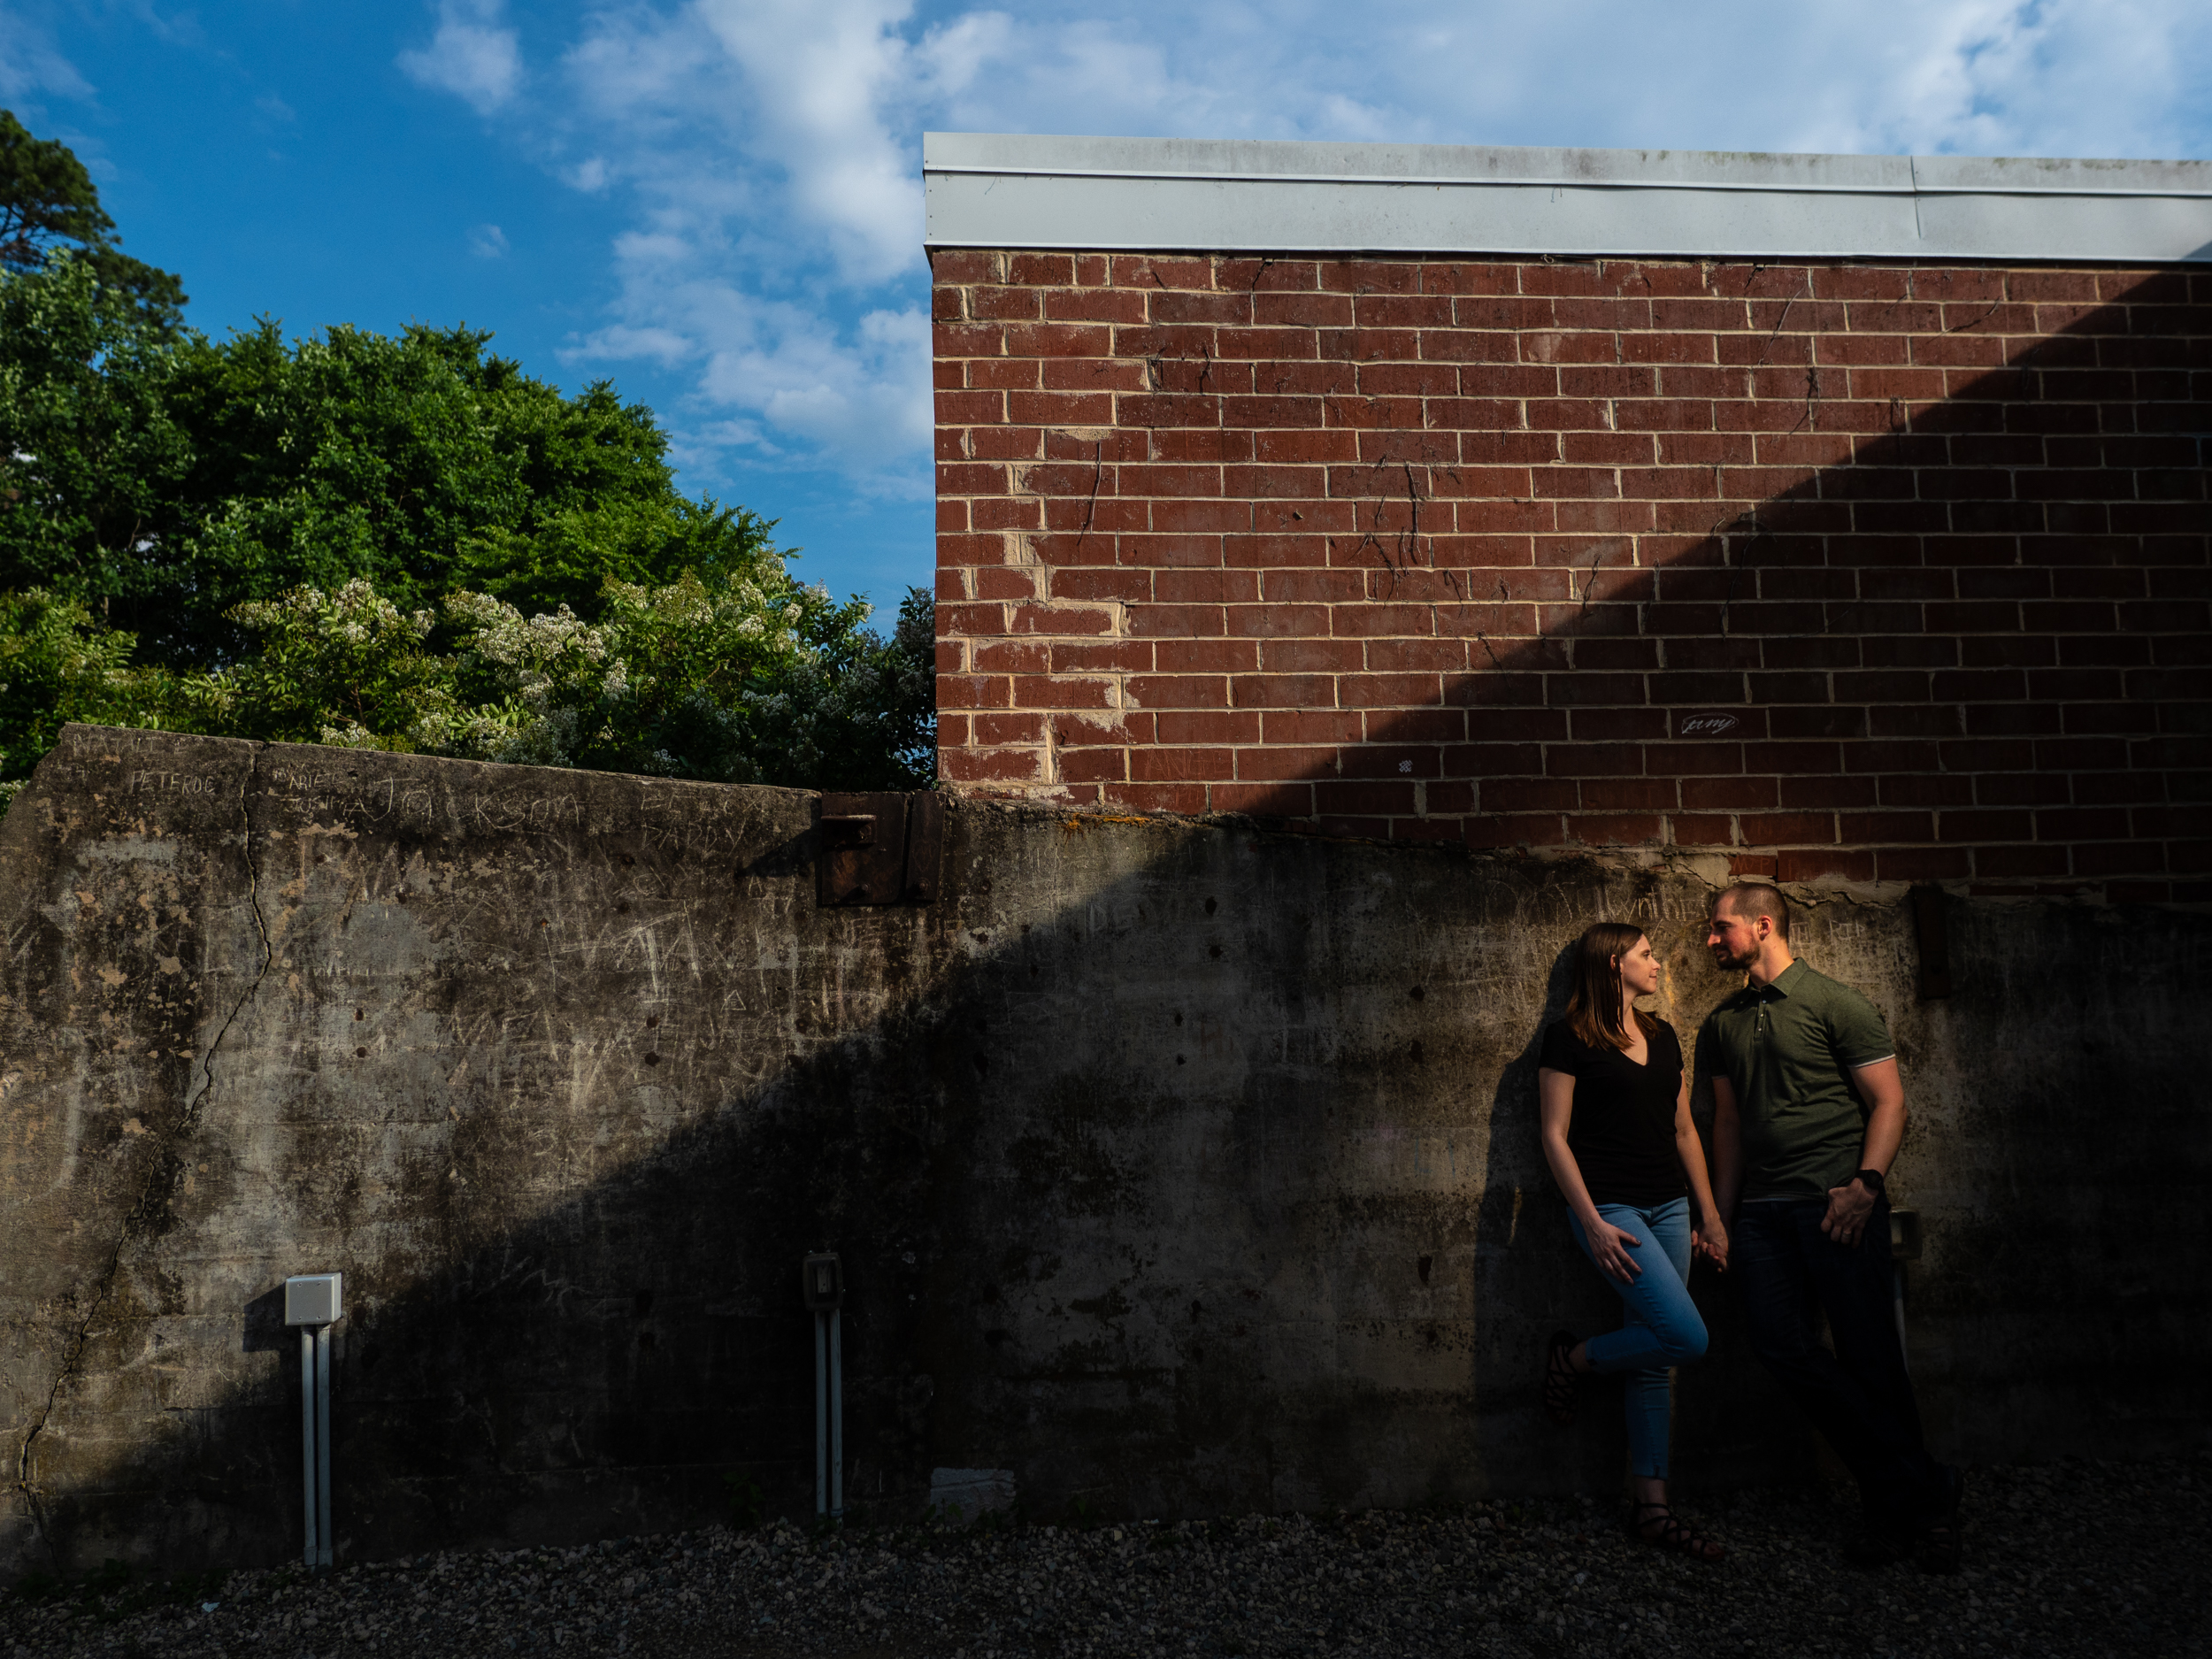 saxapahaw-brewery-river-chapel hill-carrboro-engagement-portraits-wedding-emily-brad-30345.jpg